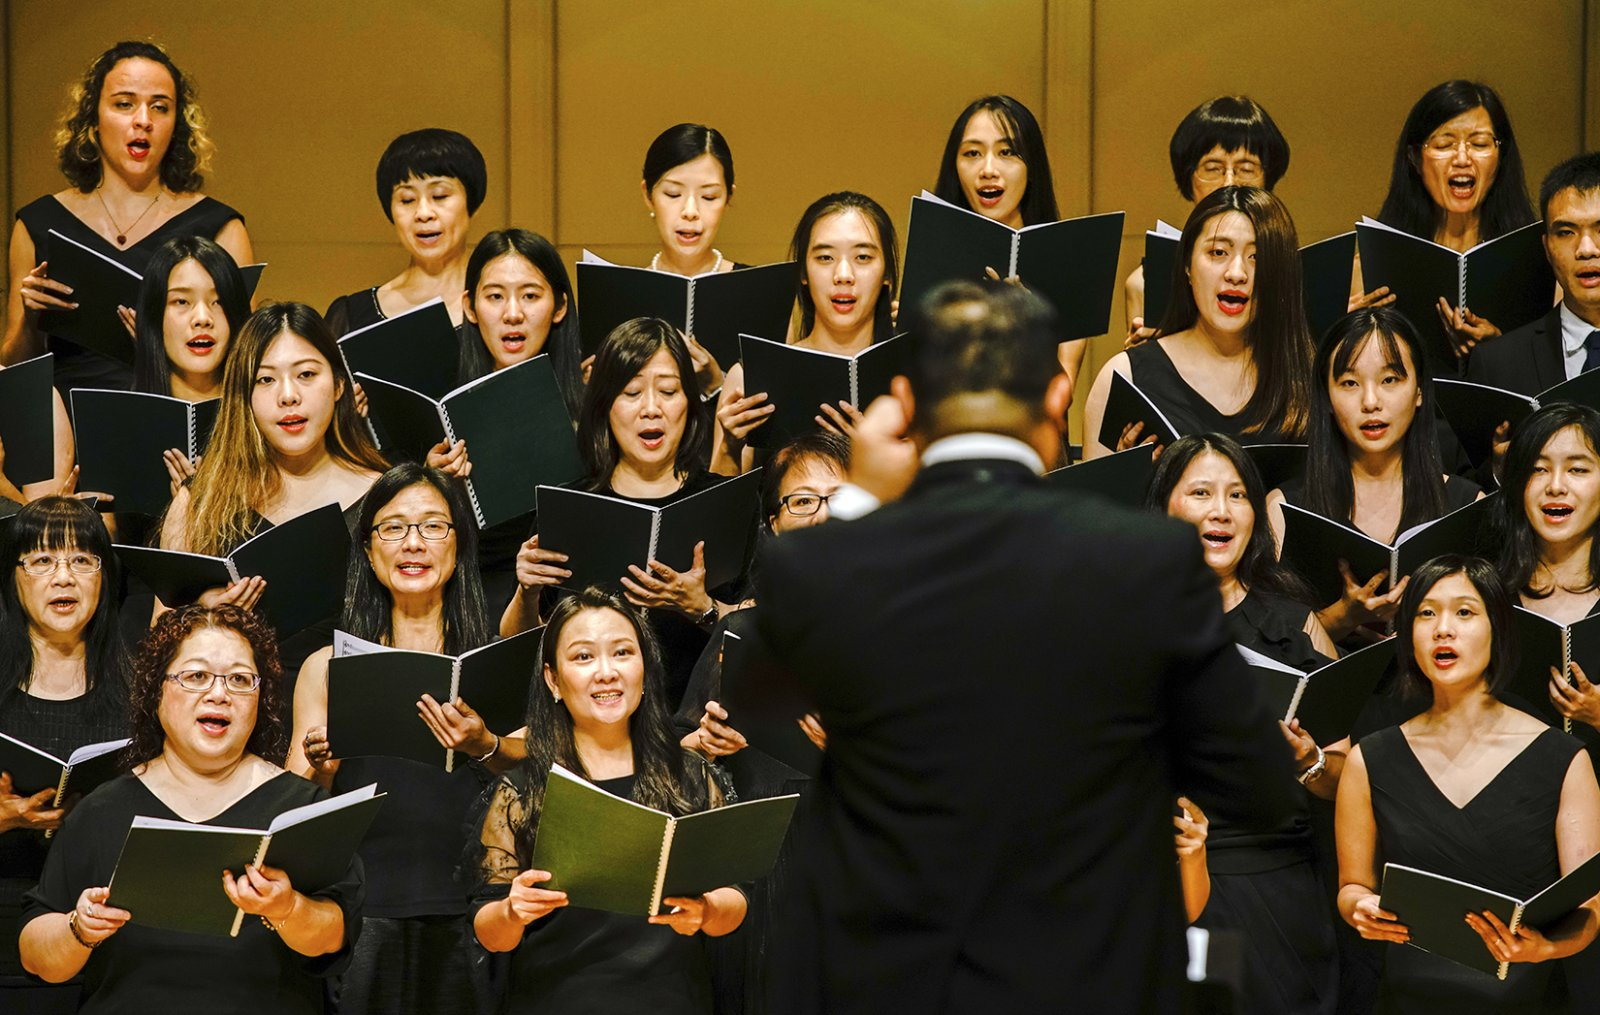 The performance of Yellow River Cantata featured the CityU Choir, CityU Concert Singers and the Pro-Musica Society of Hong Kong.